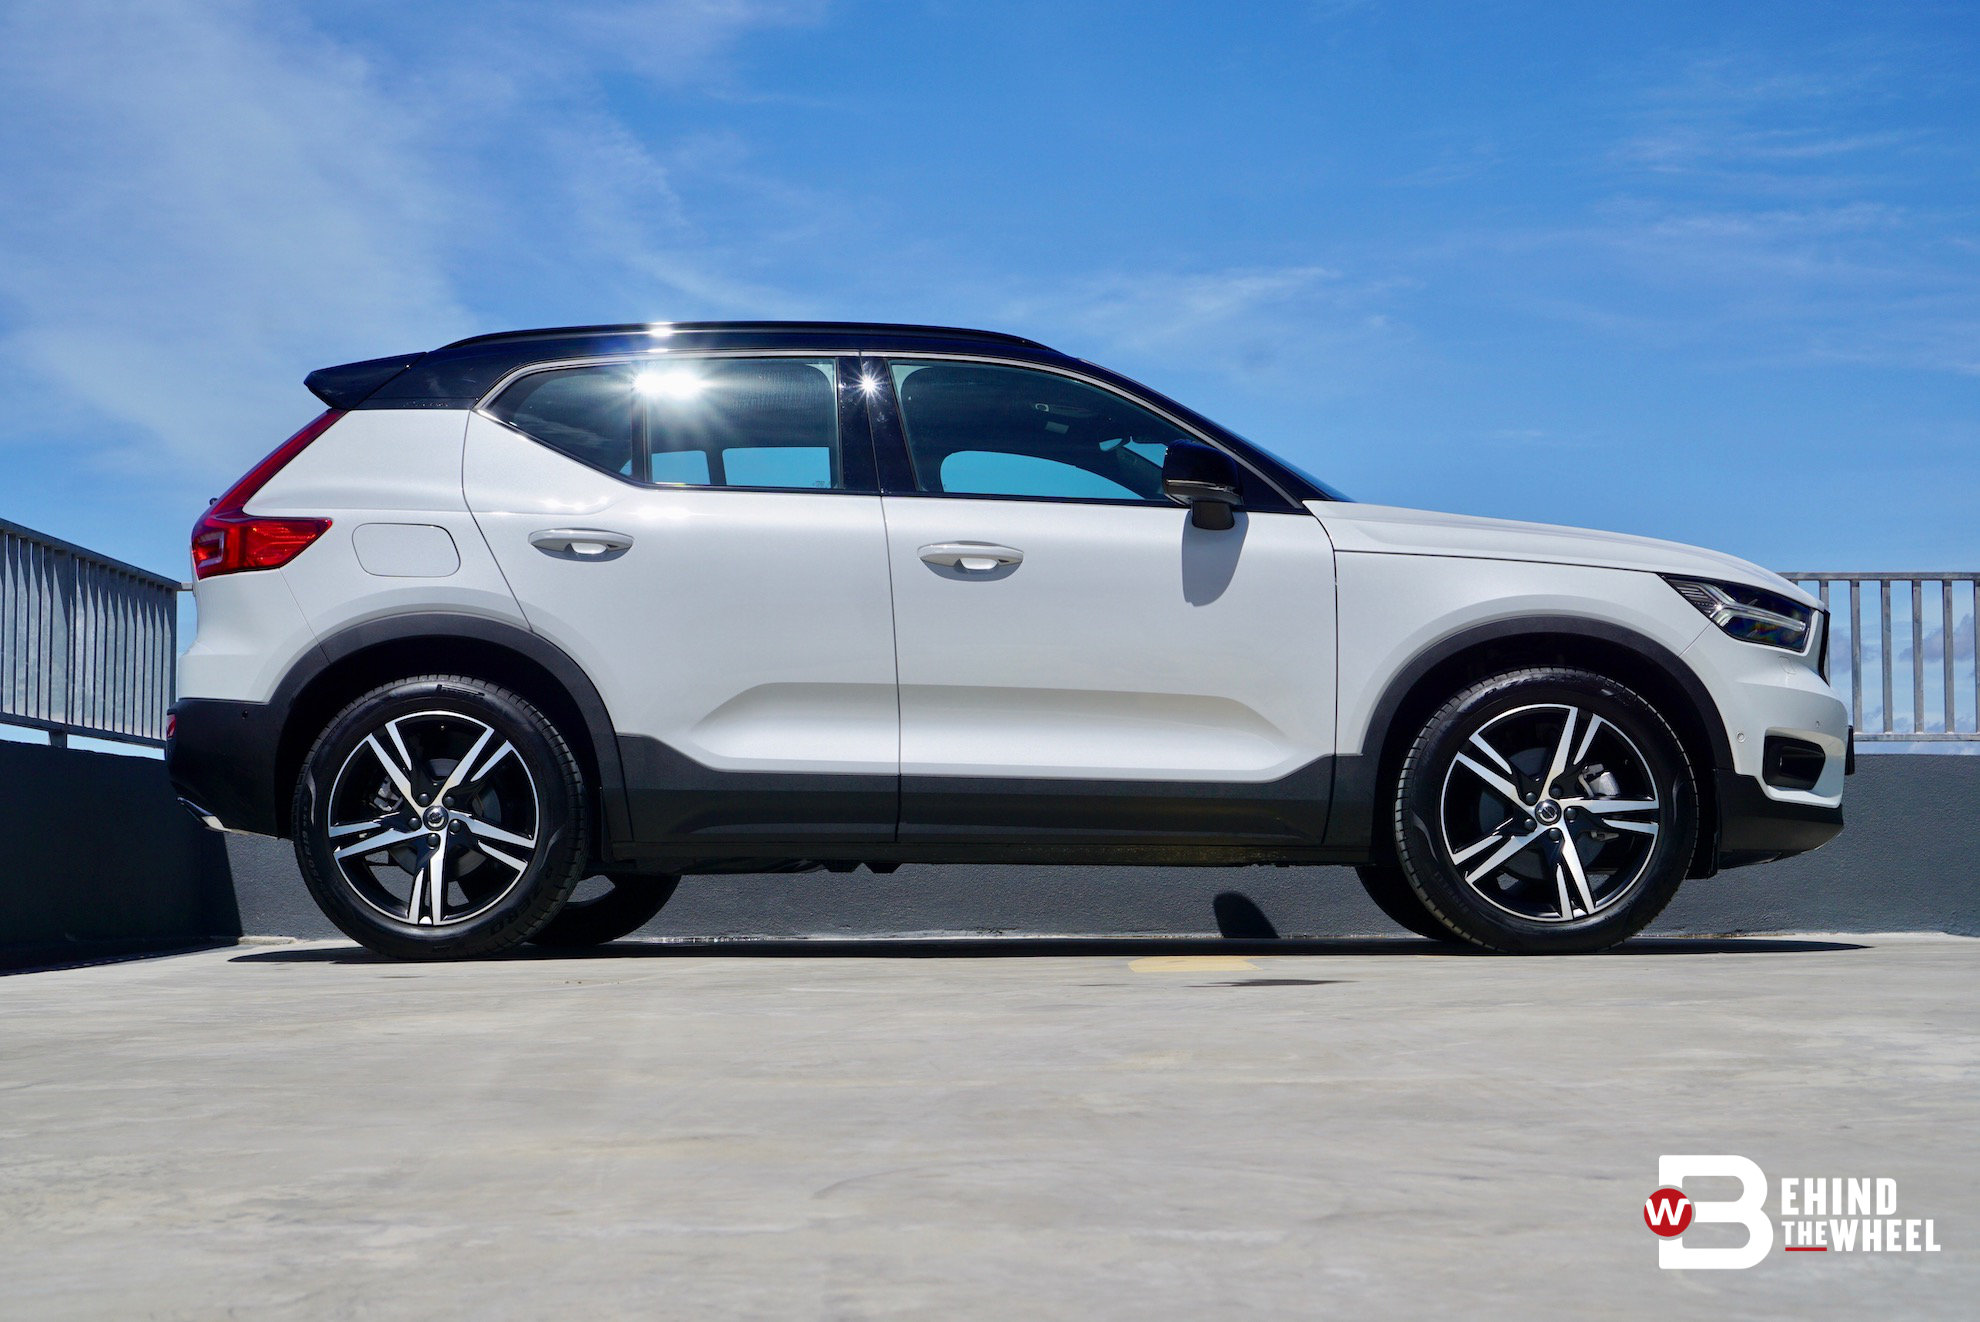 Volvo XC40 T5 Review: Sporty Meets Utility Right In The Middle, The Meeting Is Good